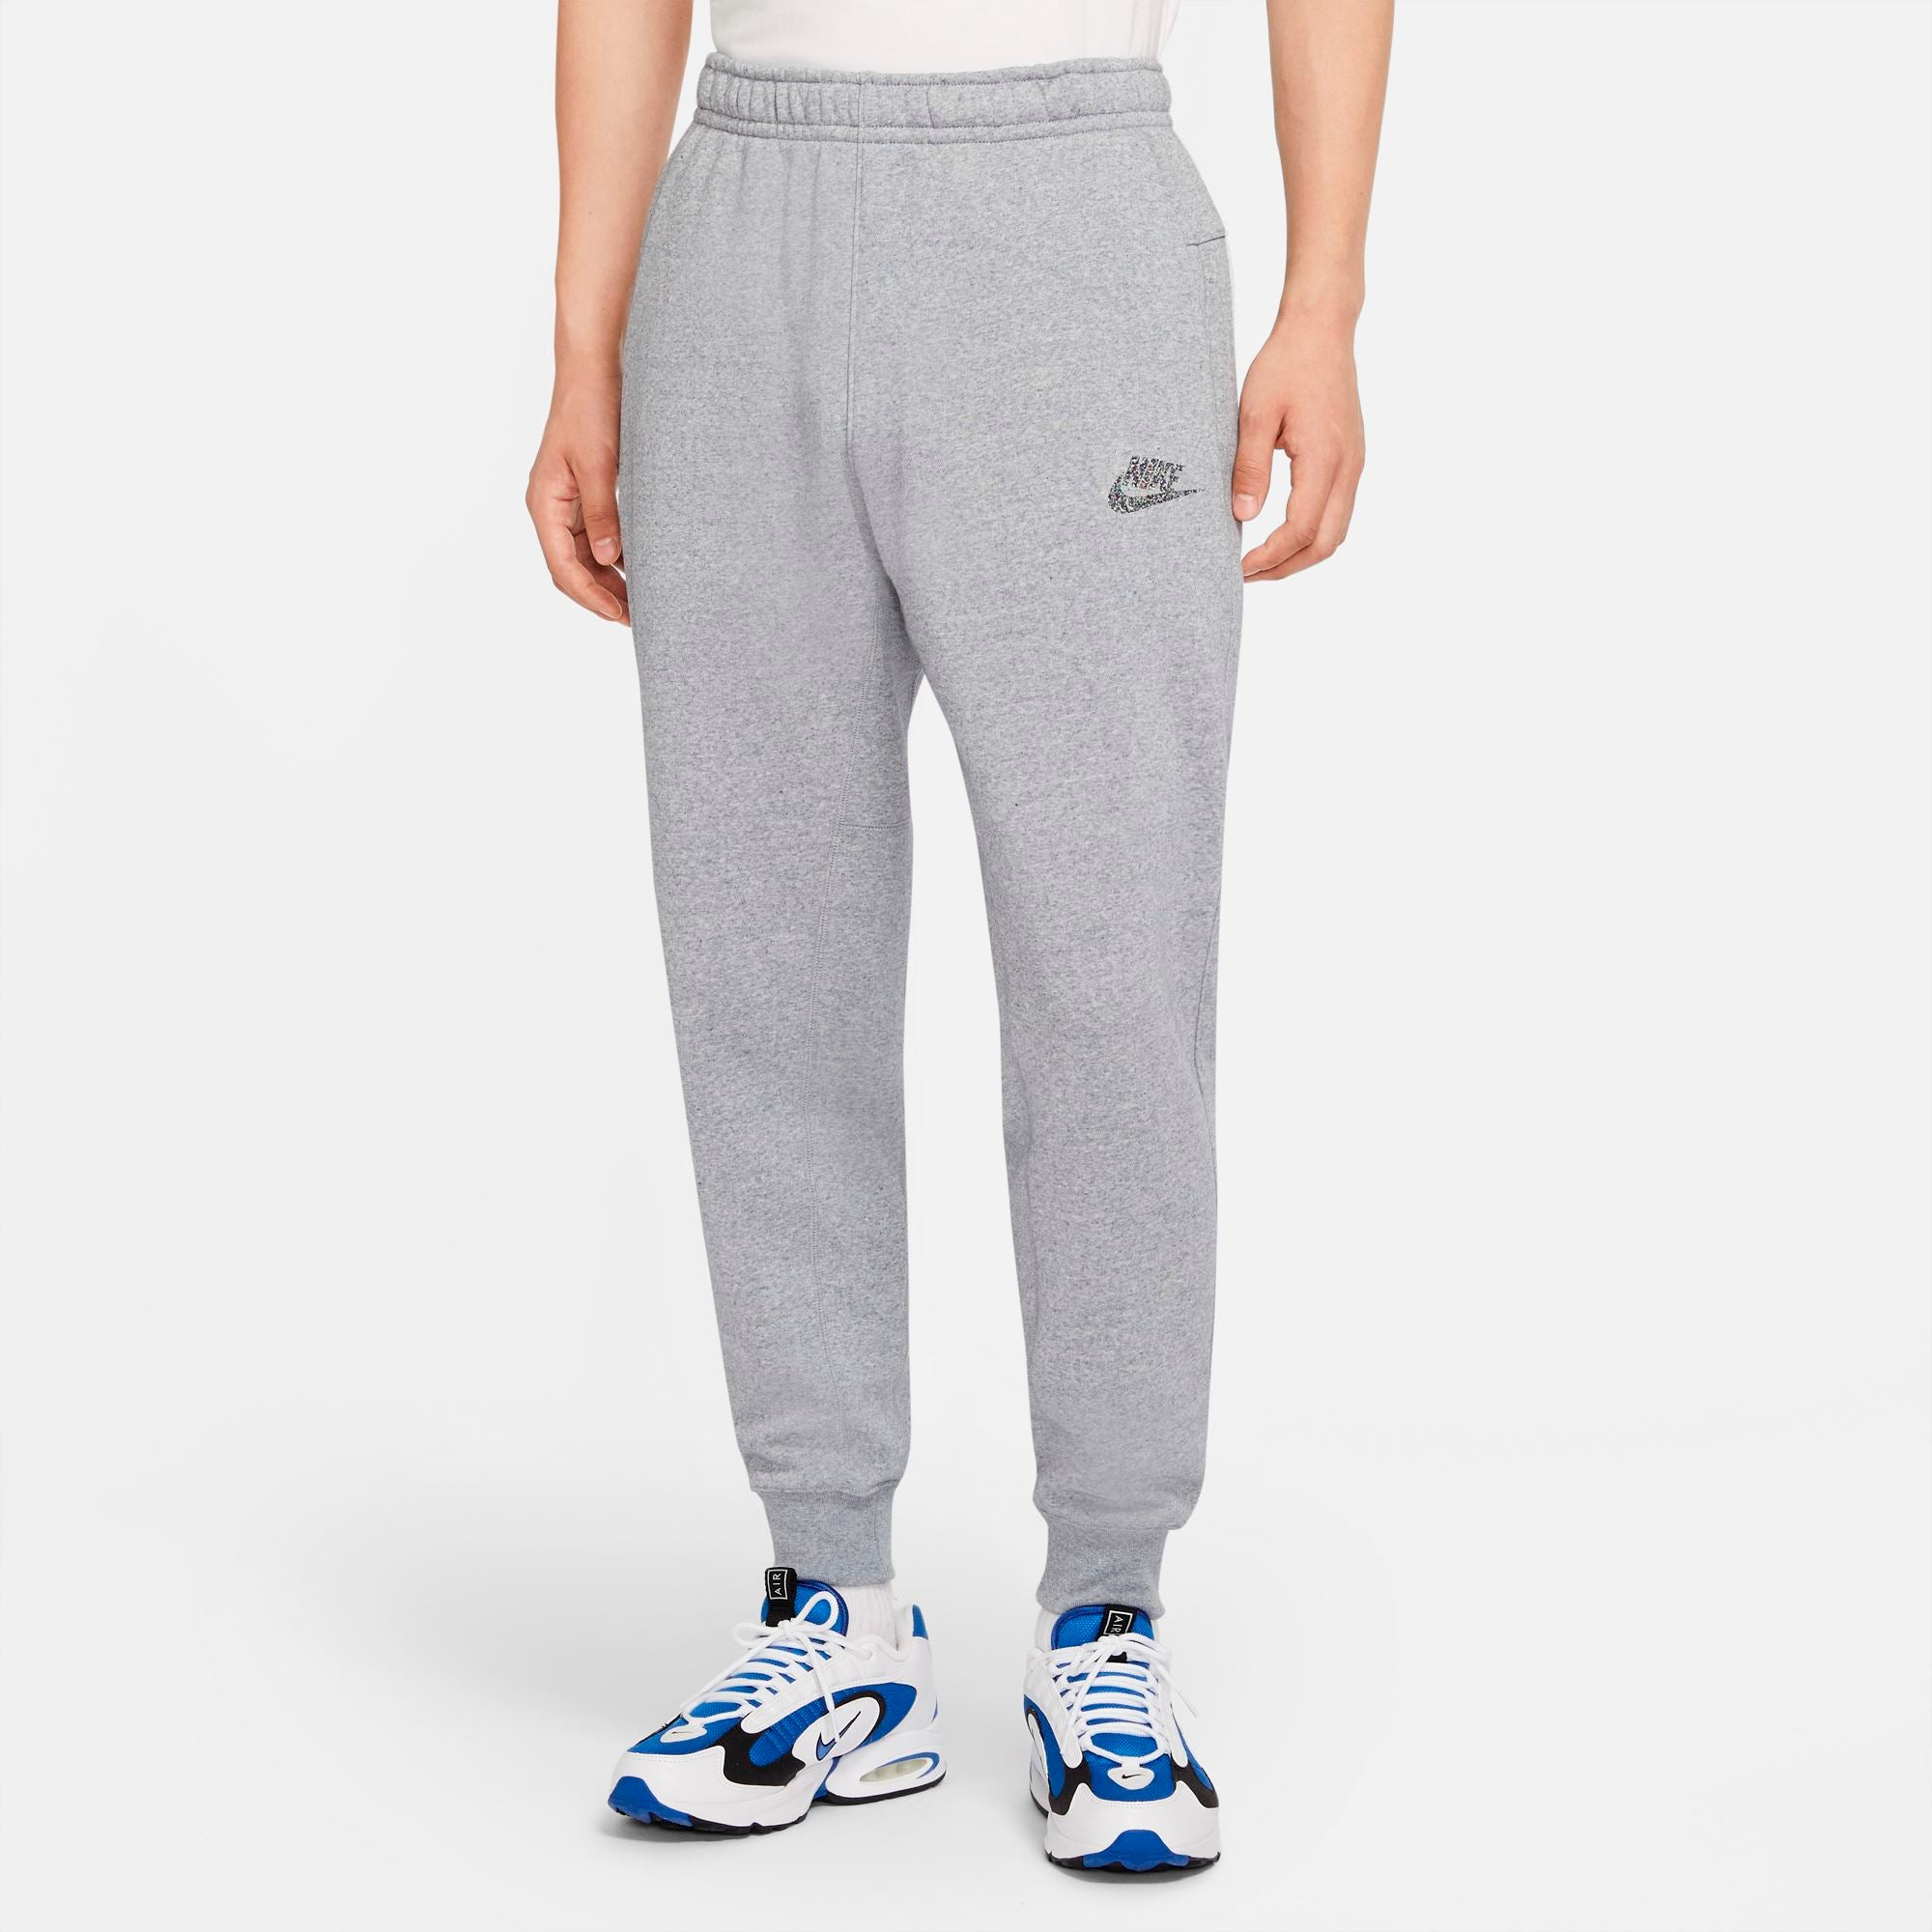 Nike Men's Sportswear Jogger SB - Multicolour/Obsidian/Multicolour SP-ApparelPants-Mens Nike